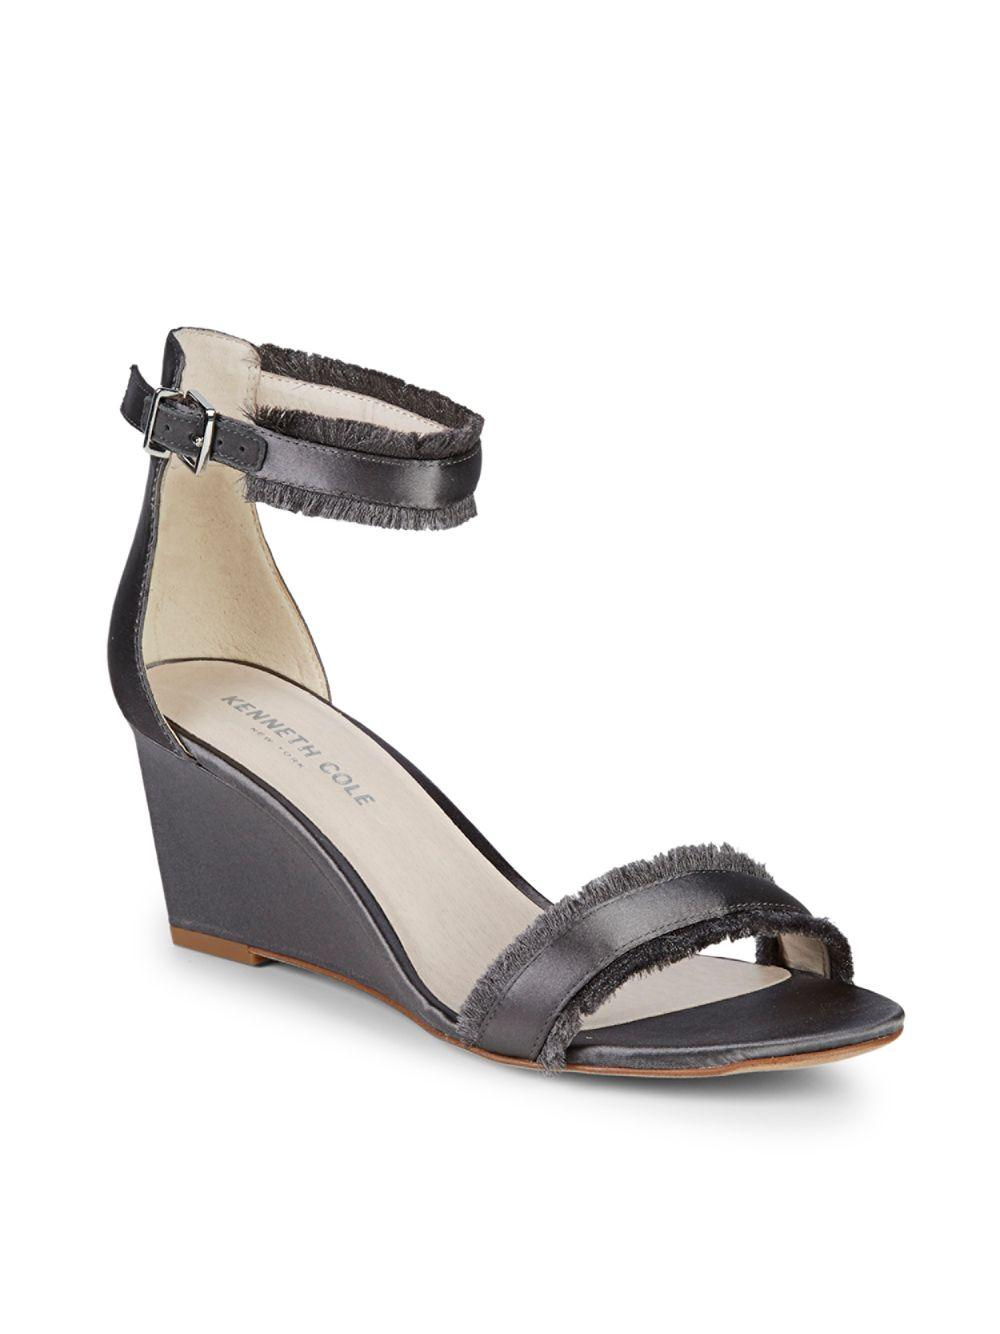 5d60a939a1 Kenneth Cole Davis Denim Wedge Sandals in Gray - Save 50% - Lyst